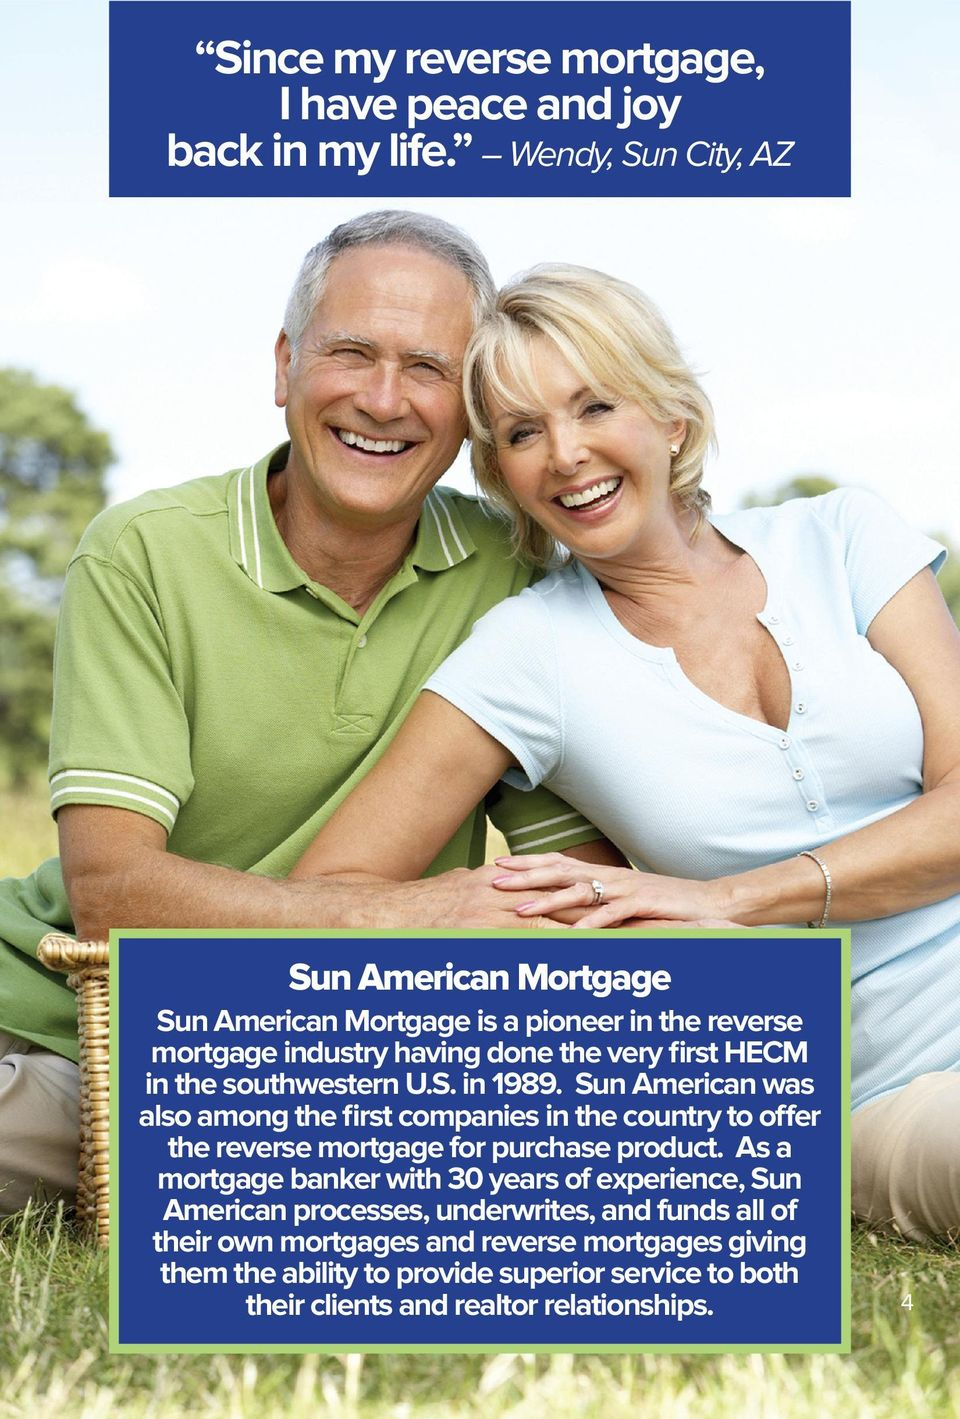 southwestern U.S. in 1989. Sun American was also among the first companies in the country to offer the reverse mortgage for purchase product.